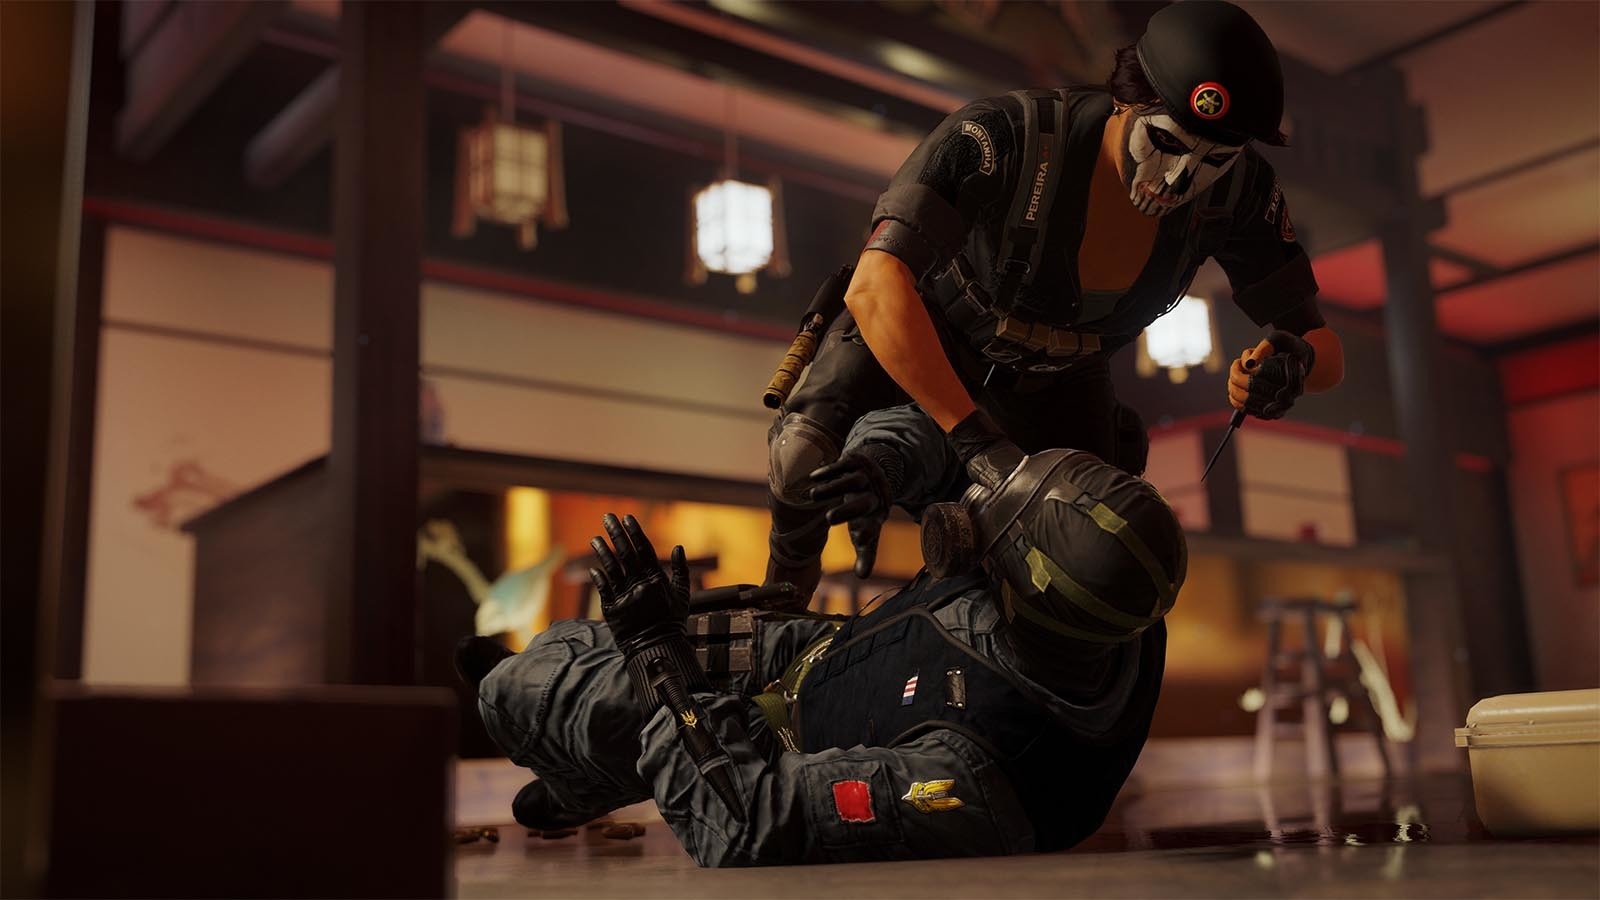 Tom Clancy's Rainbow Six Siege [Uplay Ubisoft Connect] for PC - Buy now